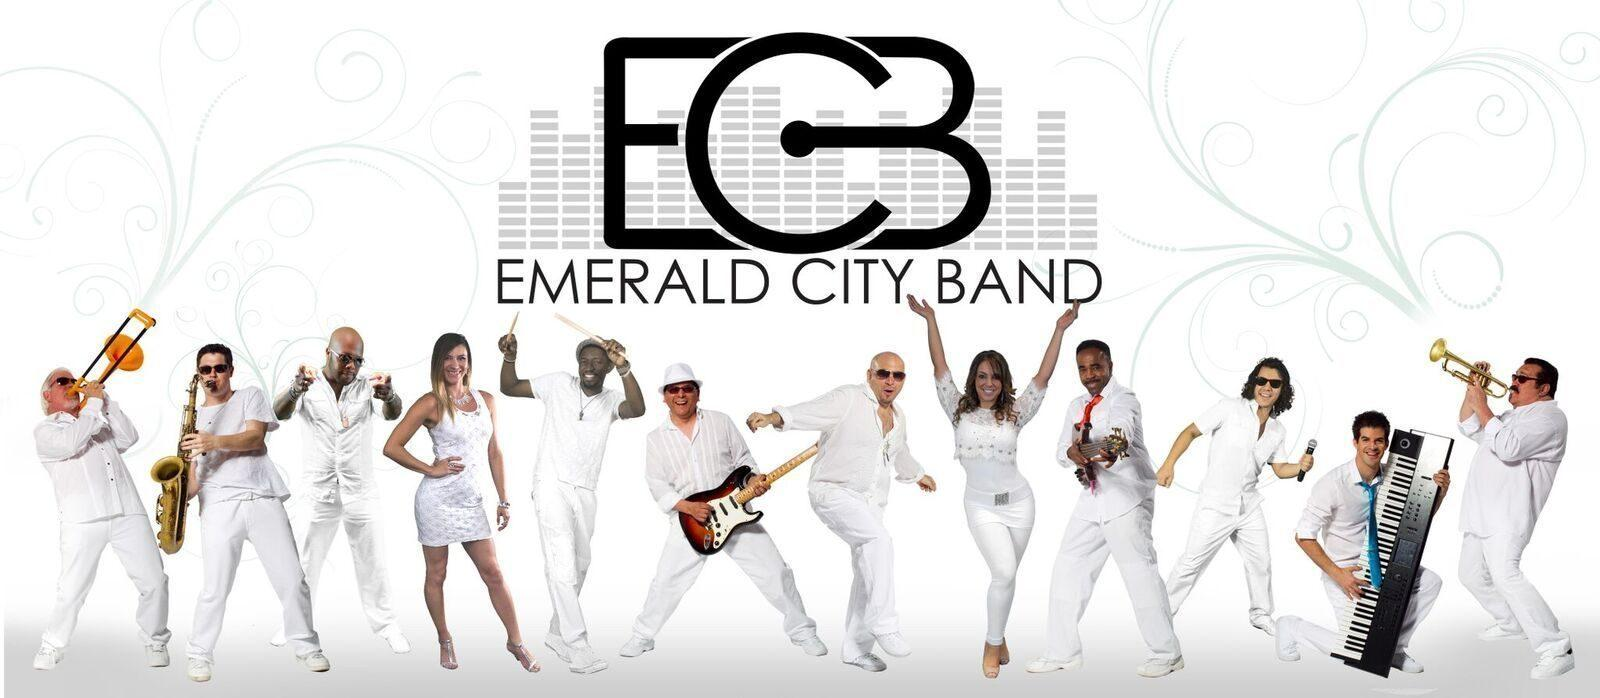 """Why Dallas and the World Still Love the 'Emerald City Band' 35 Years Later<span class=""""wtr-time-wrap after-title""""><span class=""""wtr-time-number"""">4</span> min read</span>"""